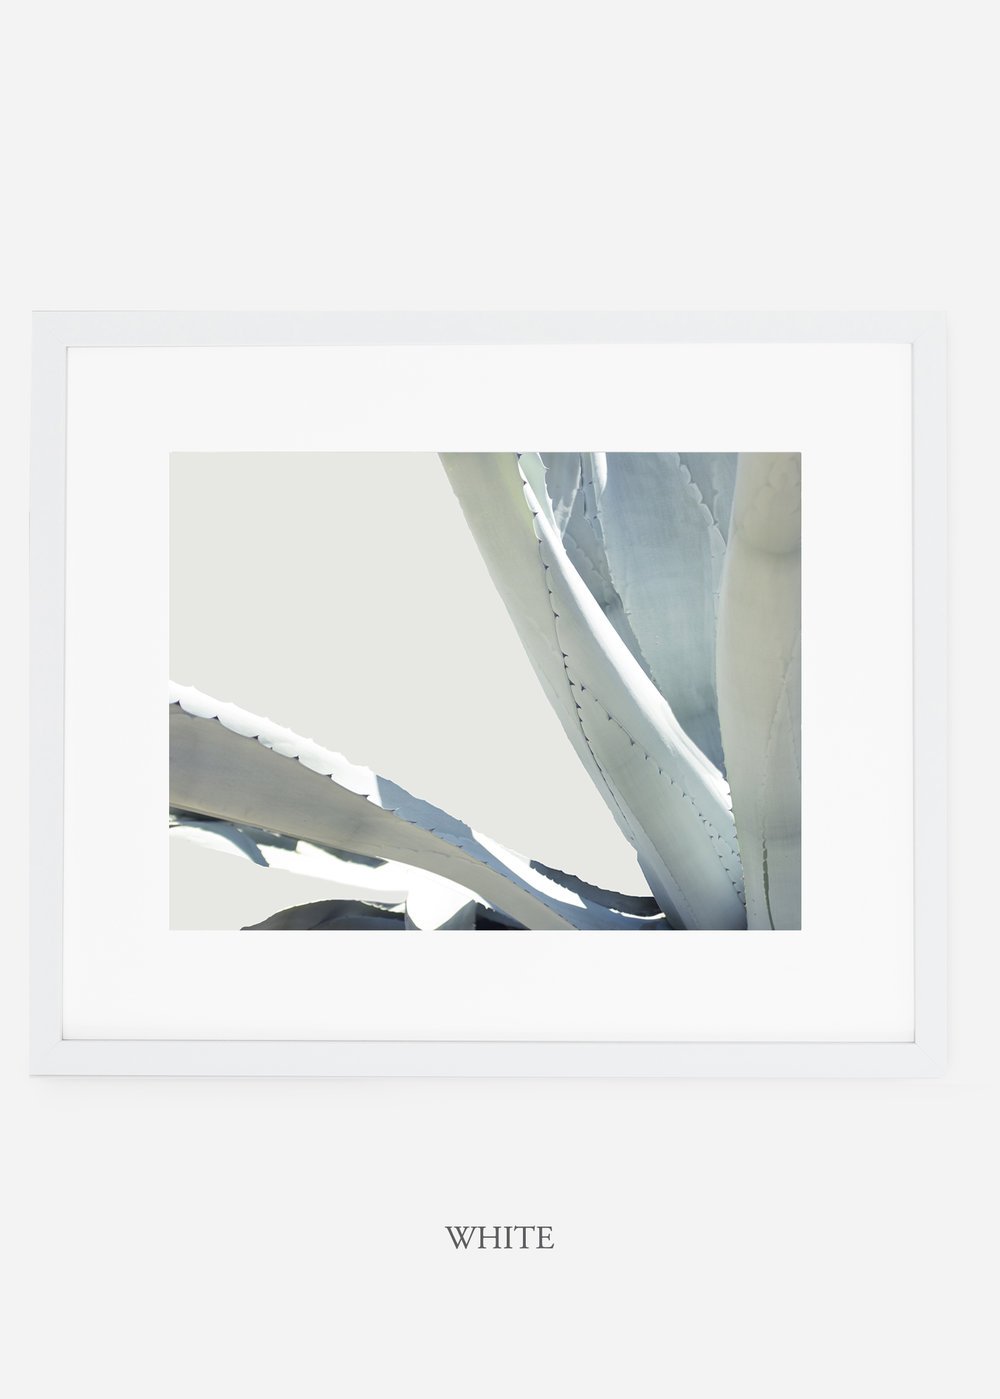 WilderCalifornia_whiteframe_WinterWhite_No6_Art_Photography_interiordesign_agave.jpg